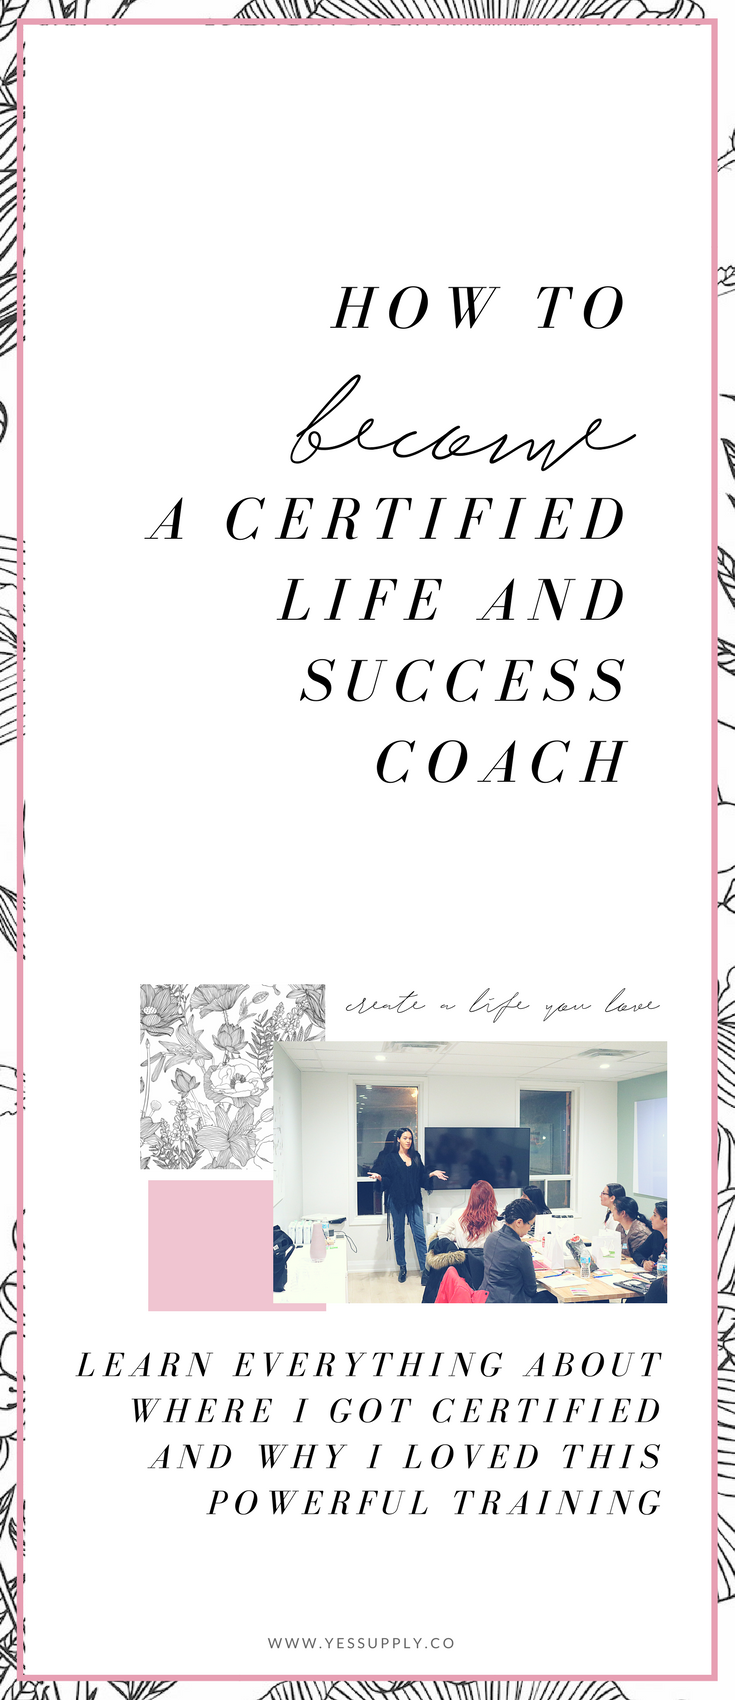 Want to become a life coach? In this post I share tips, advice, and ideas you need to get certification and training programs as a life and success coach. This is perfect if you love personal development, spirituality, motivation and you want to make coaching your career or business. Head to https://www.yessupply.co/get-certified-coach-nlp-success-life-coaching-hypnotherapy.